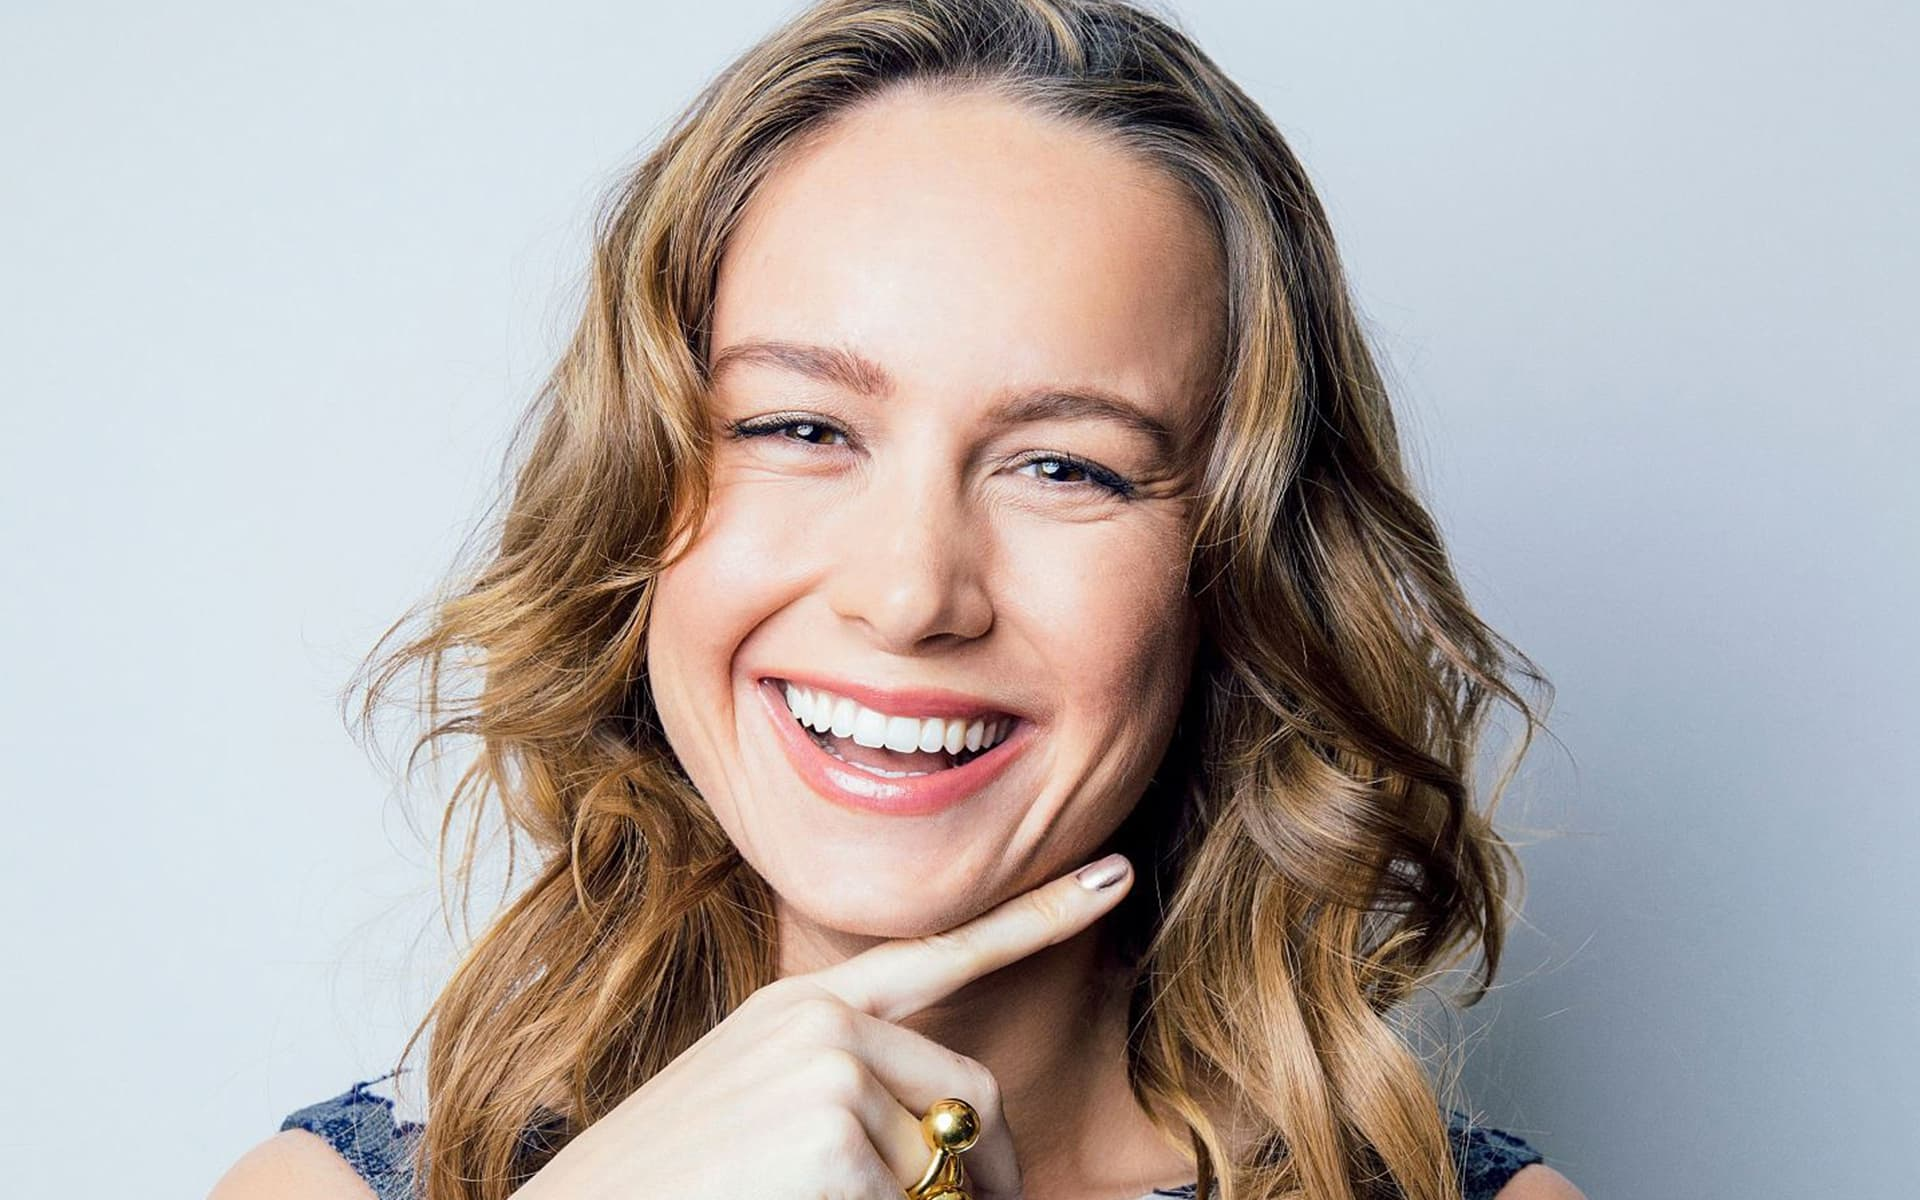 1920x1200 - Brie Larson Wallpapers 19